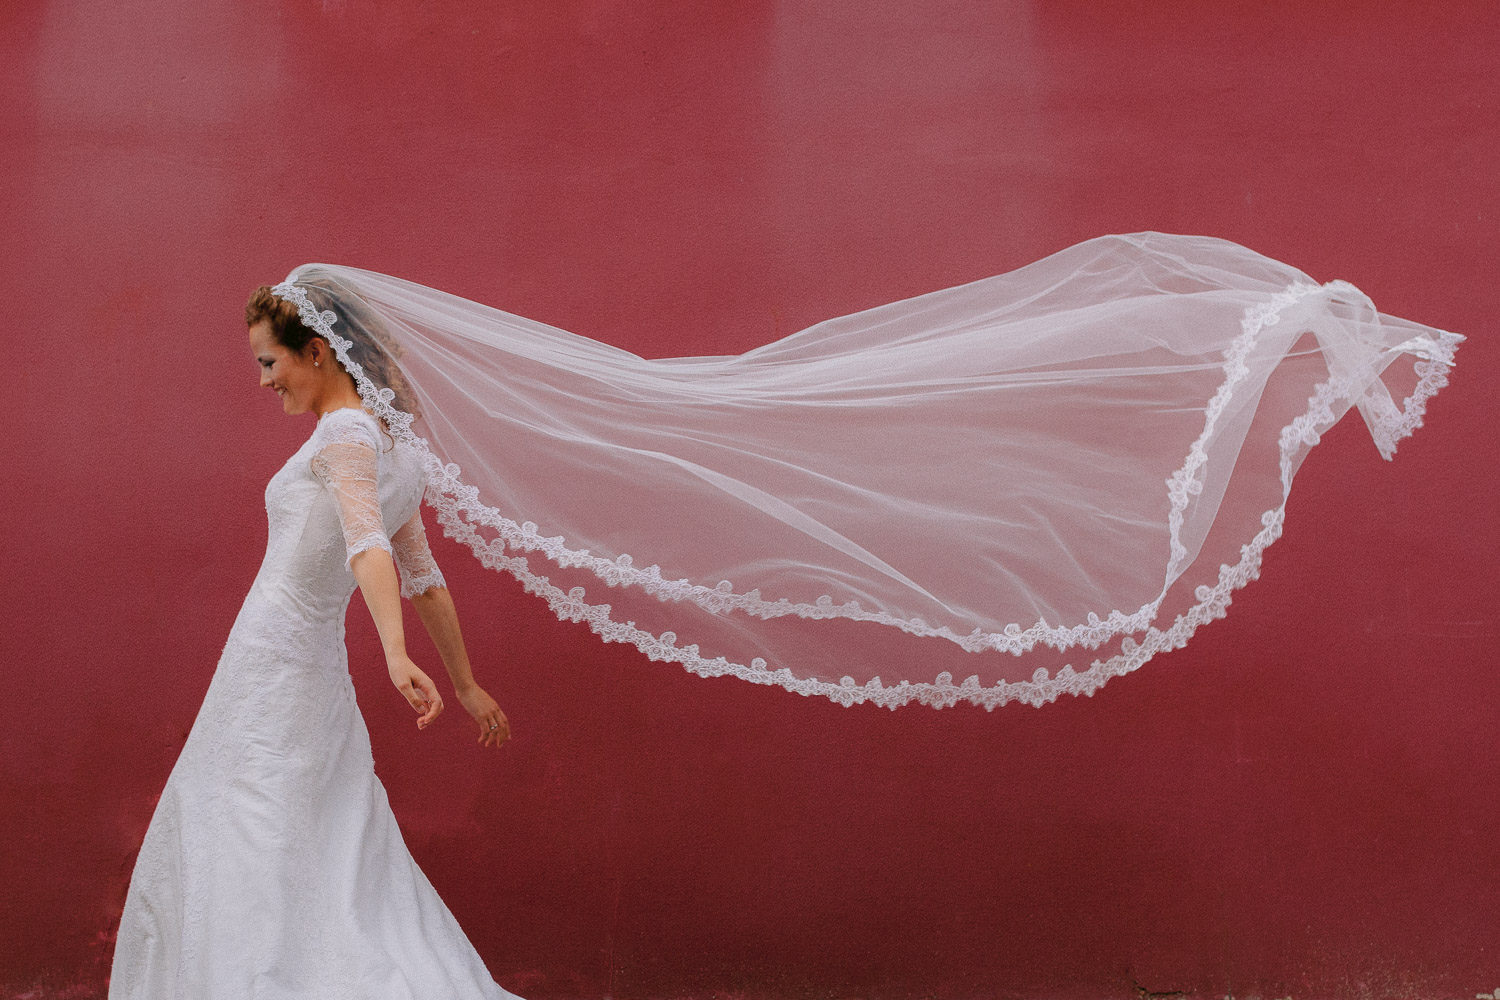 Peter van der Lingen World's Best Wedding Photo's